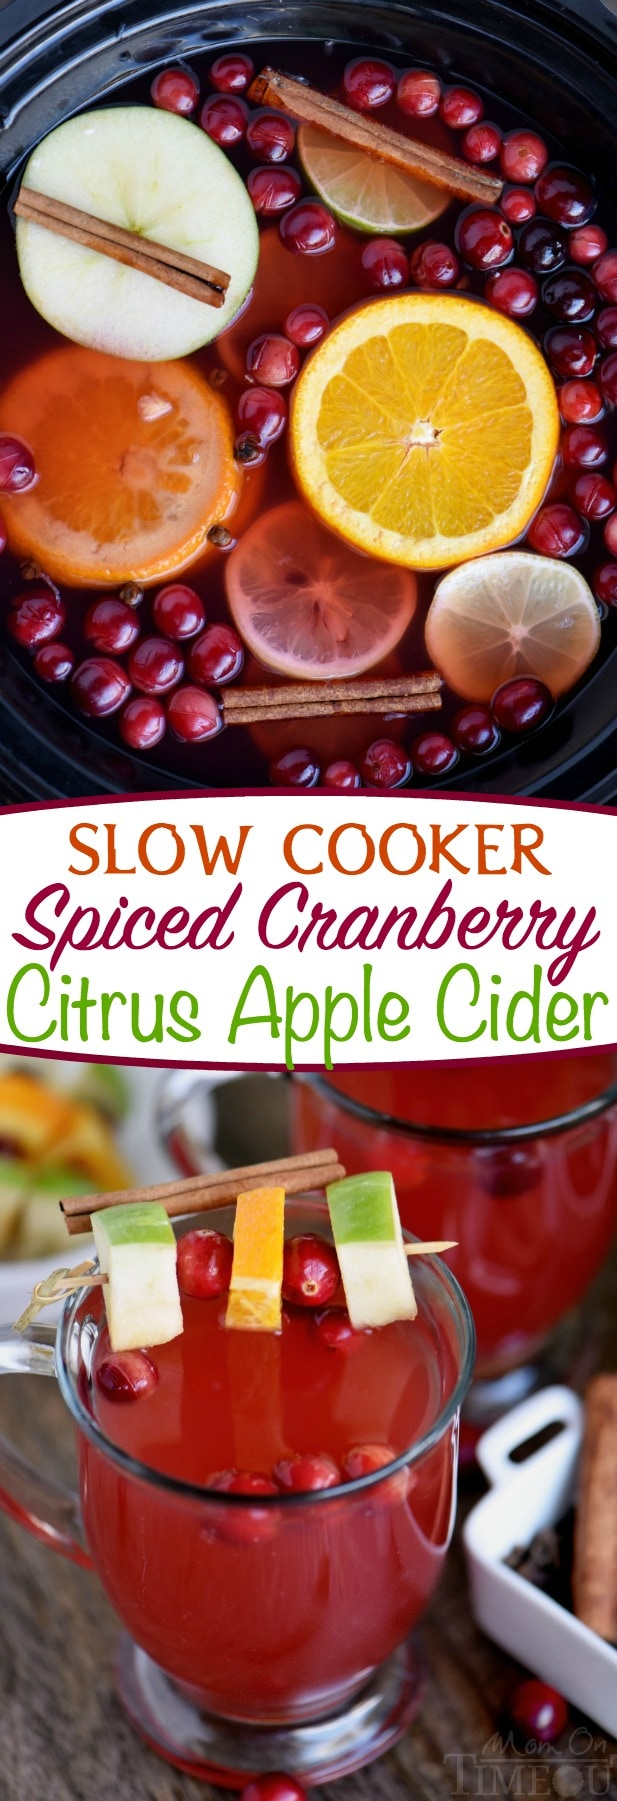 This Slow Cooker Spiced Cranberry Citrus Apple Cider is the beverage of choice this season! Fill your home with it's delightful fragrance and your belly with it's spicy warmth! Perfect for parties and the holidays! // Mom On Timeout